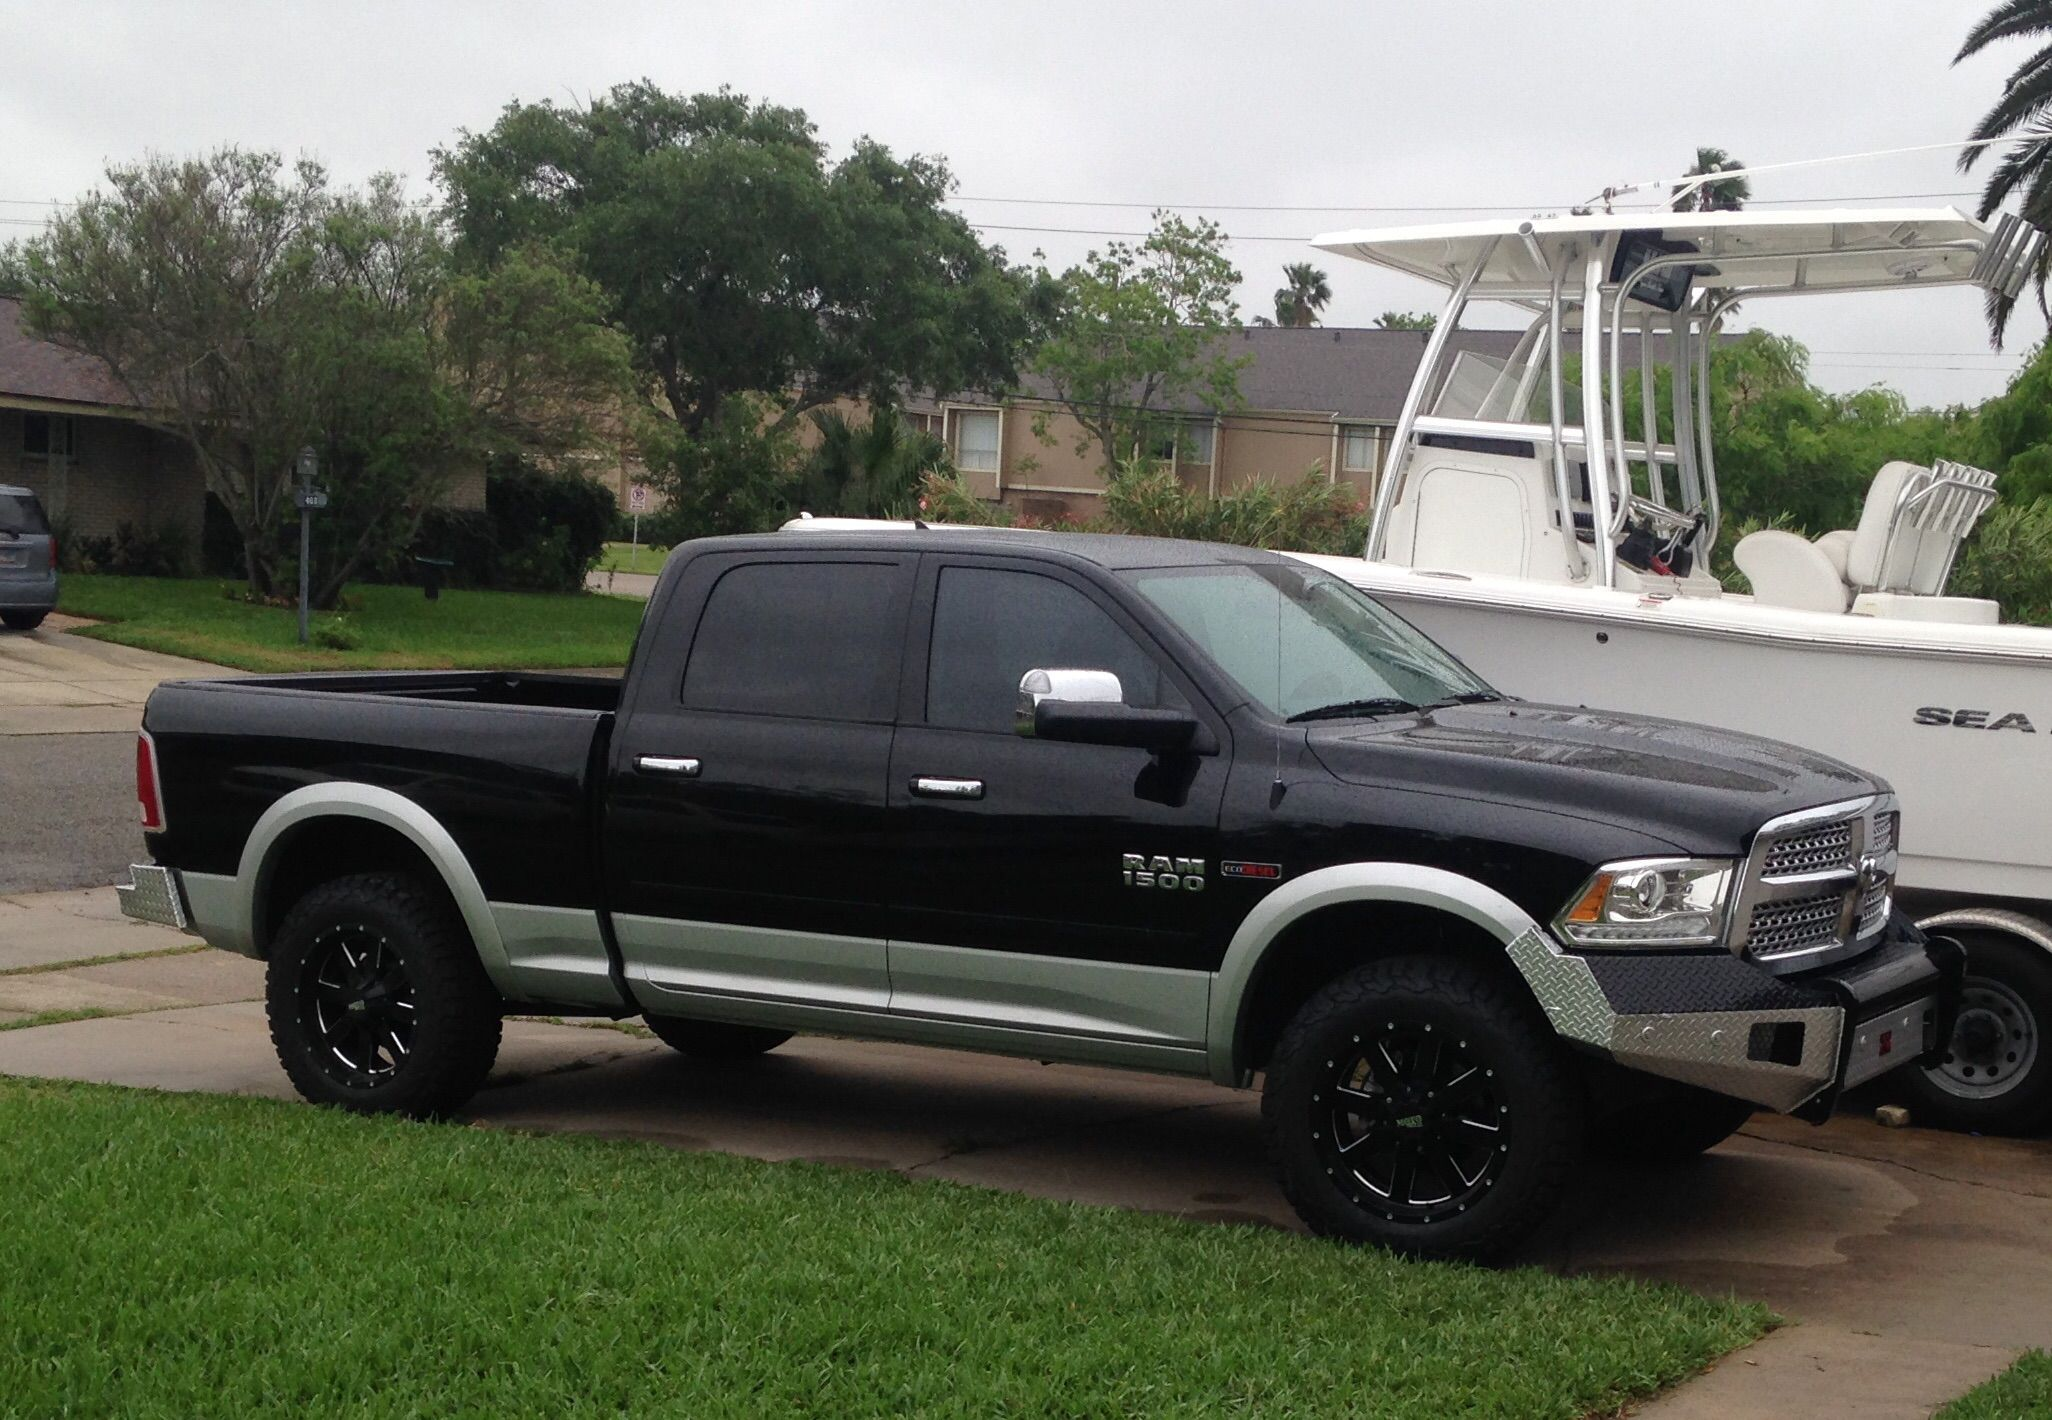 2015 Ram Ecodiesel Towing Review The Hull Truth Boating